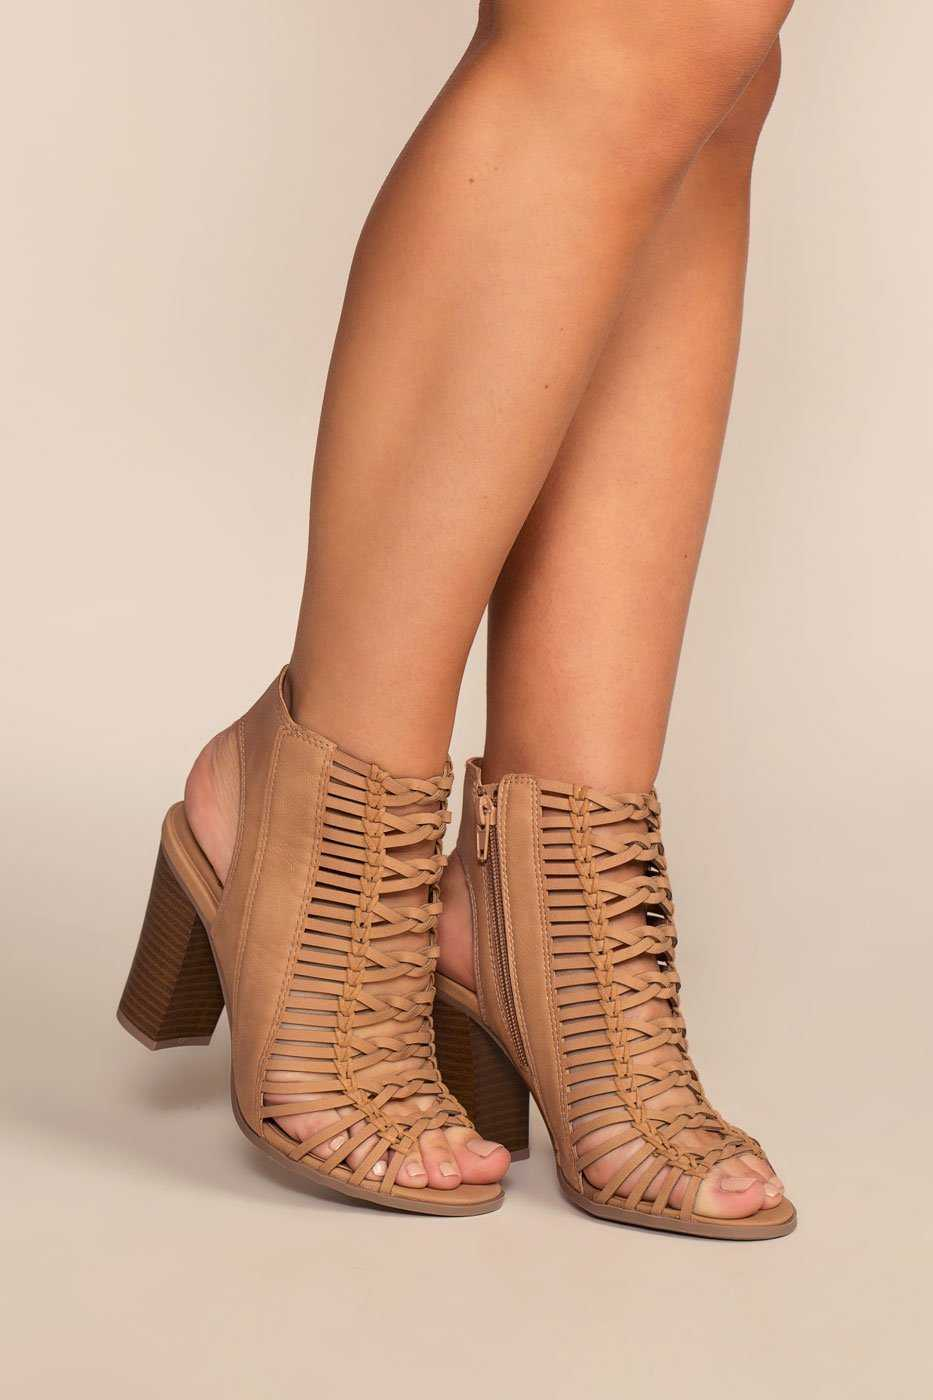 Shoes - Like A Bird Booties - Nude